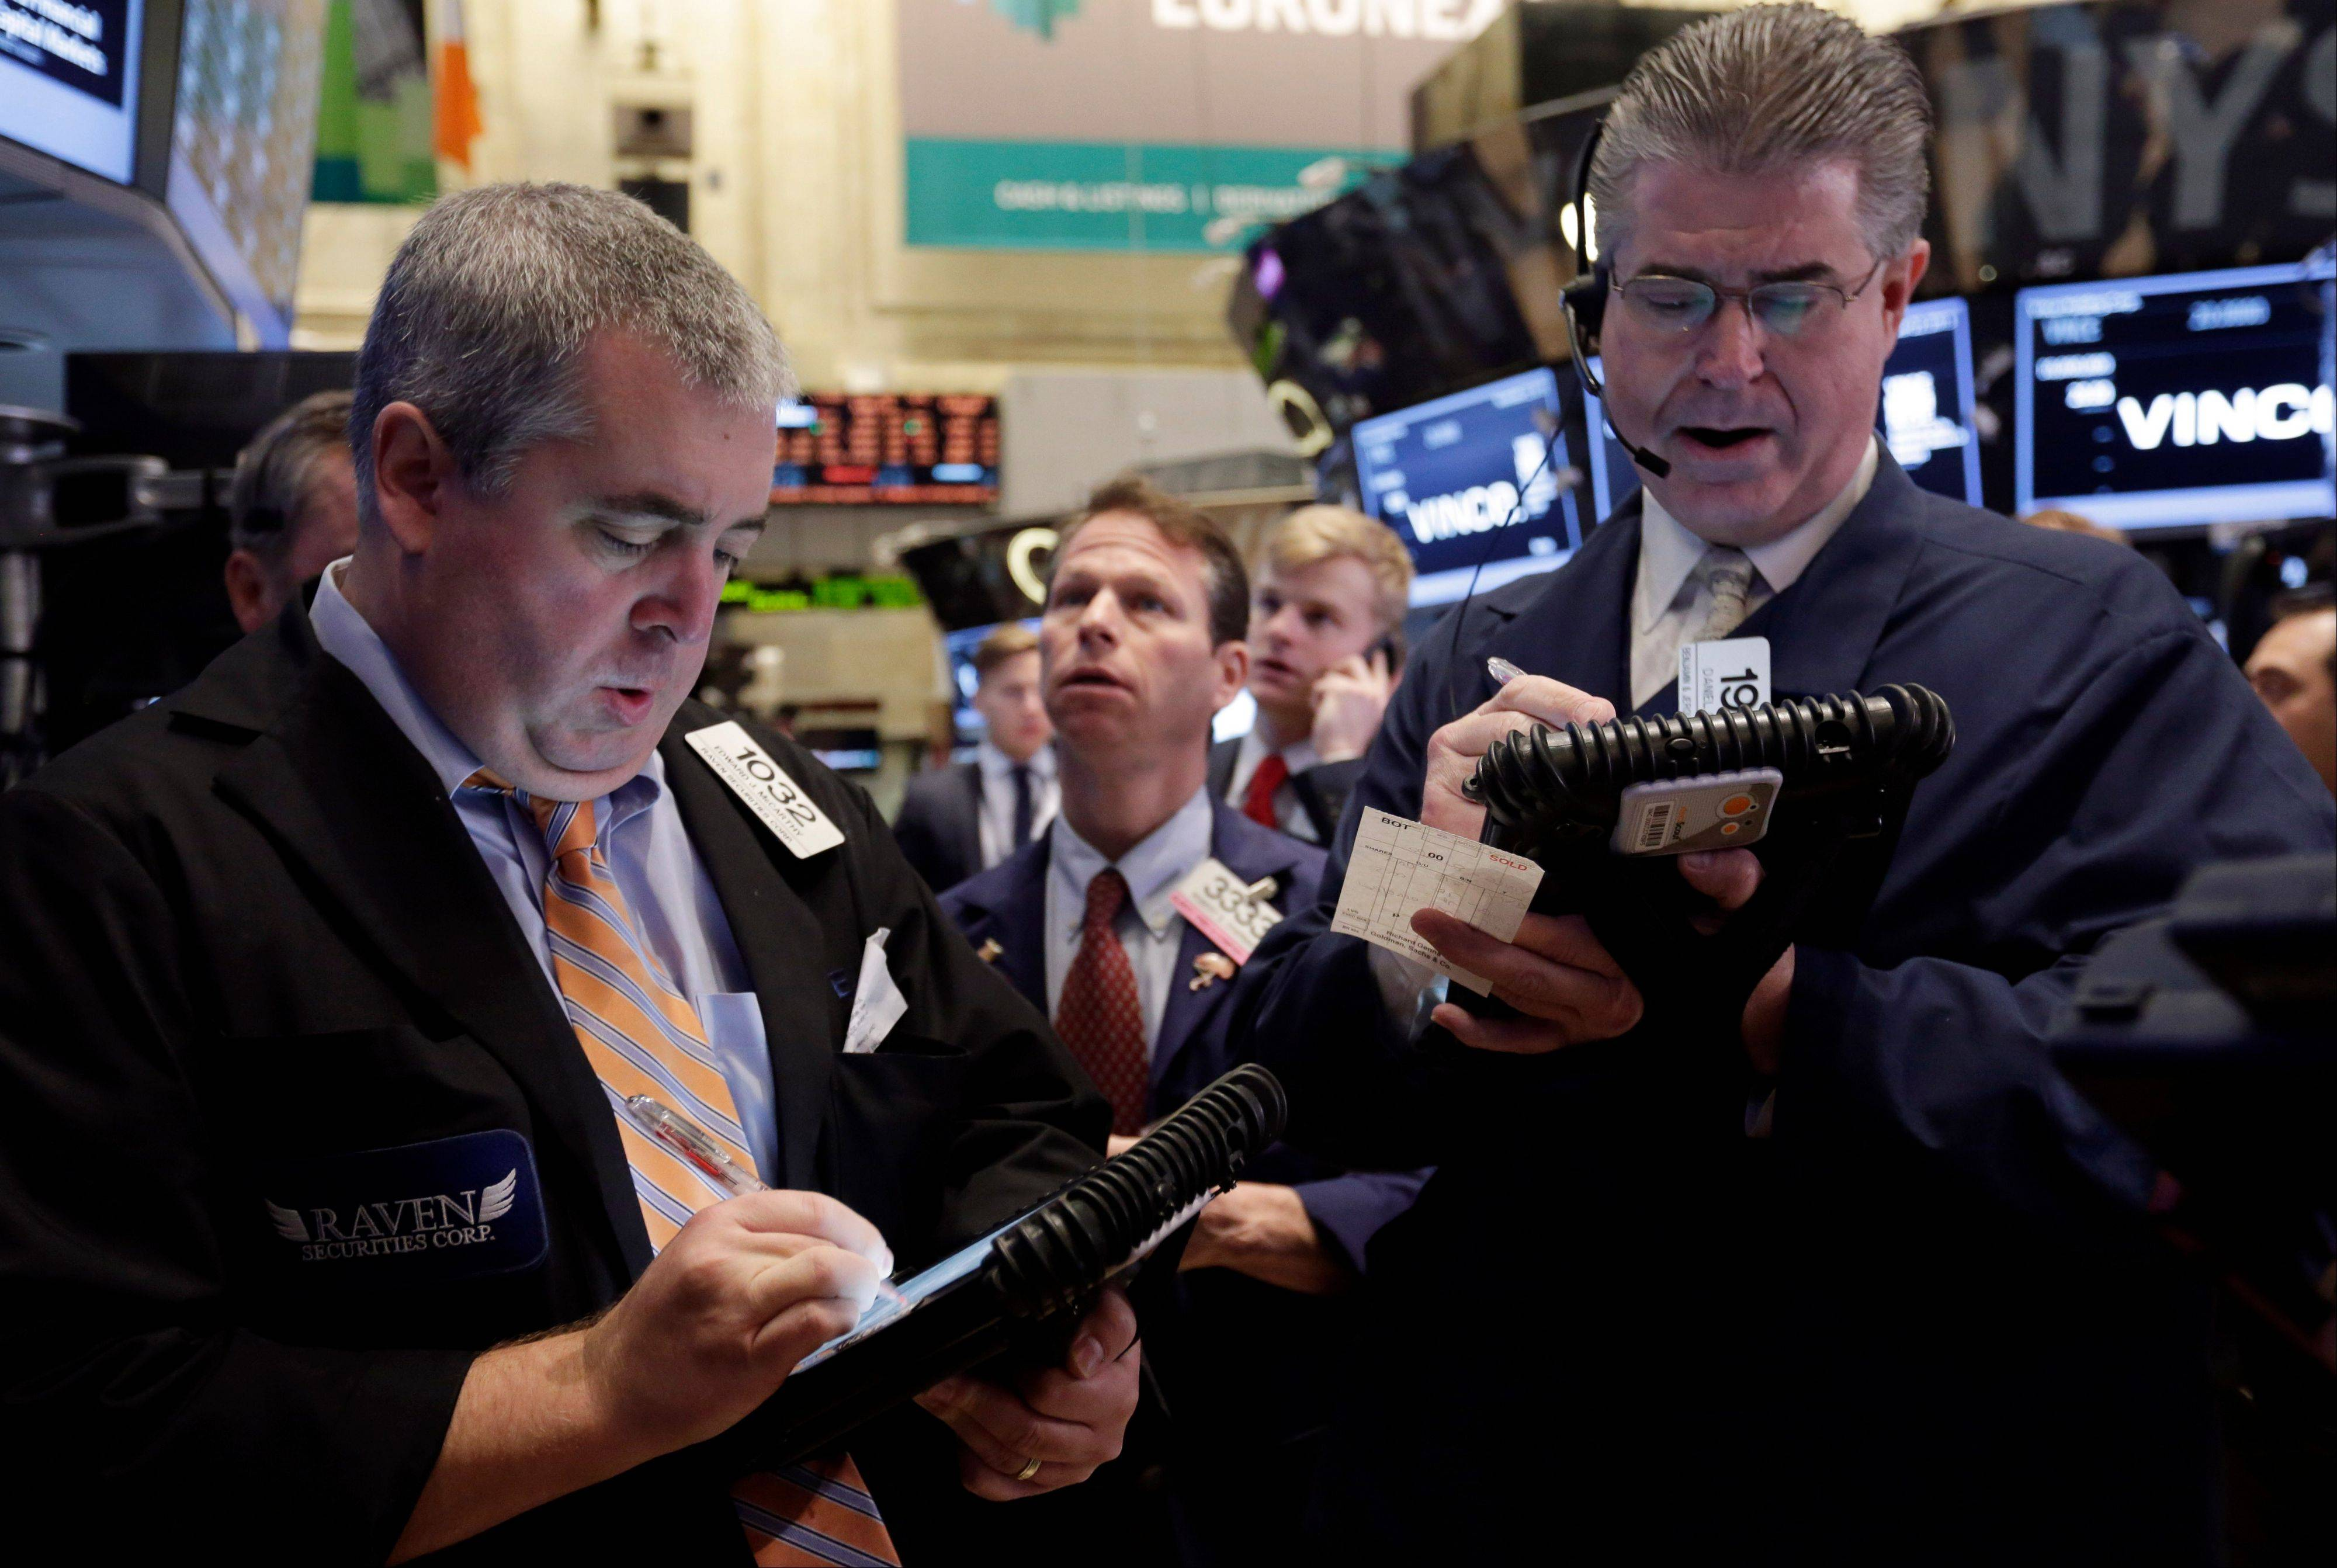 U.S. stocks fell Monday, with the Standard & Poor's 500 Index extending declines in the final hour of trading, amid data showed manufacturing unexpectedly climbed last month and reports on holiday retail sales.